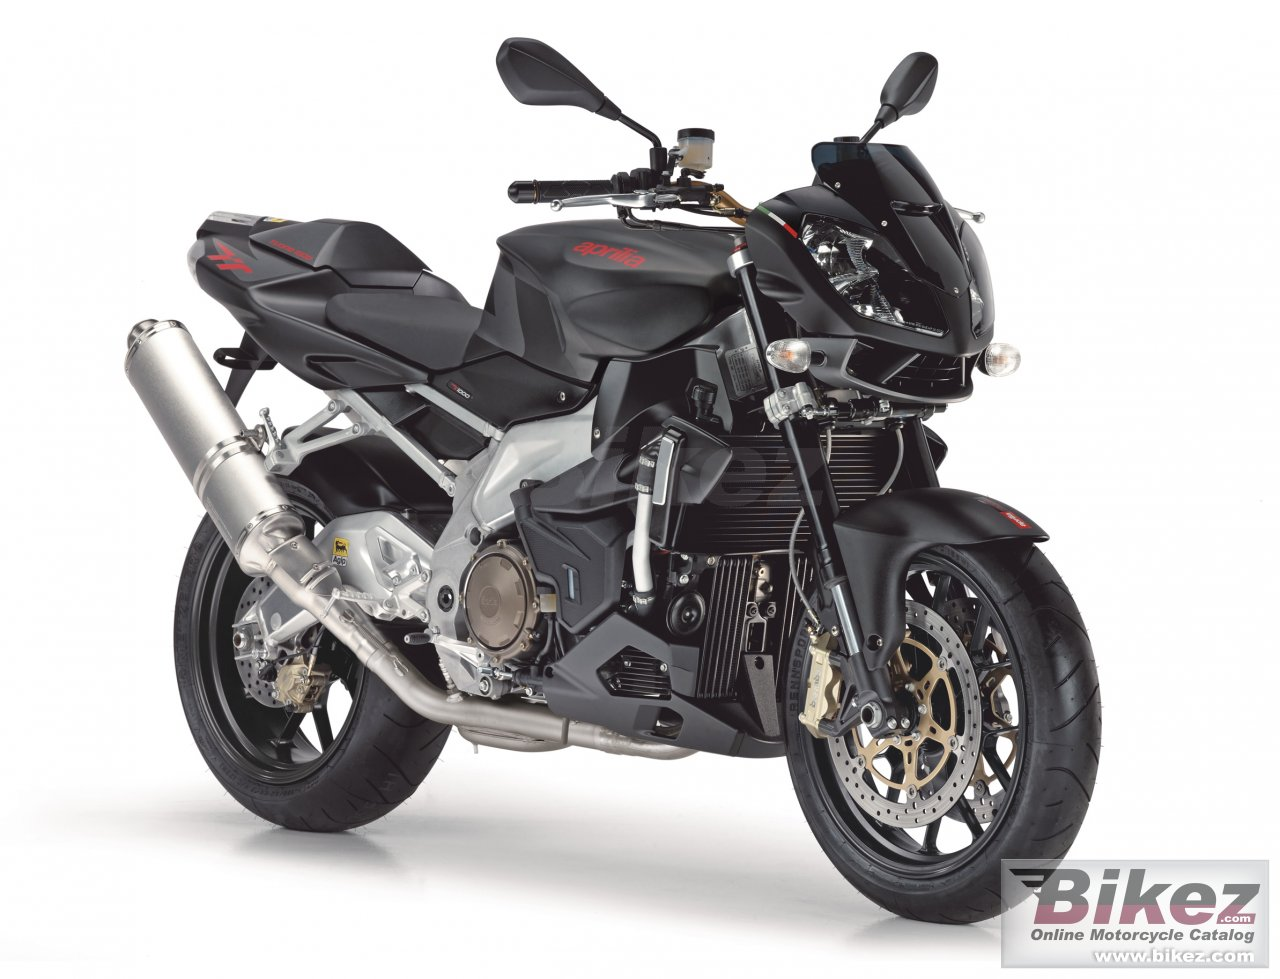 Big Aprilia tuono 1000r picture and wallpaper from Bikez.com